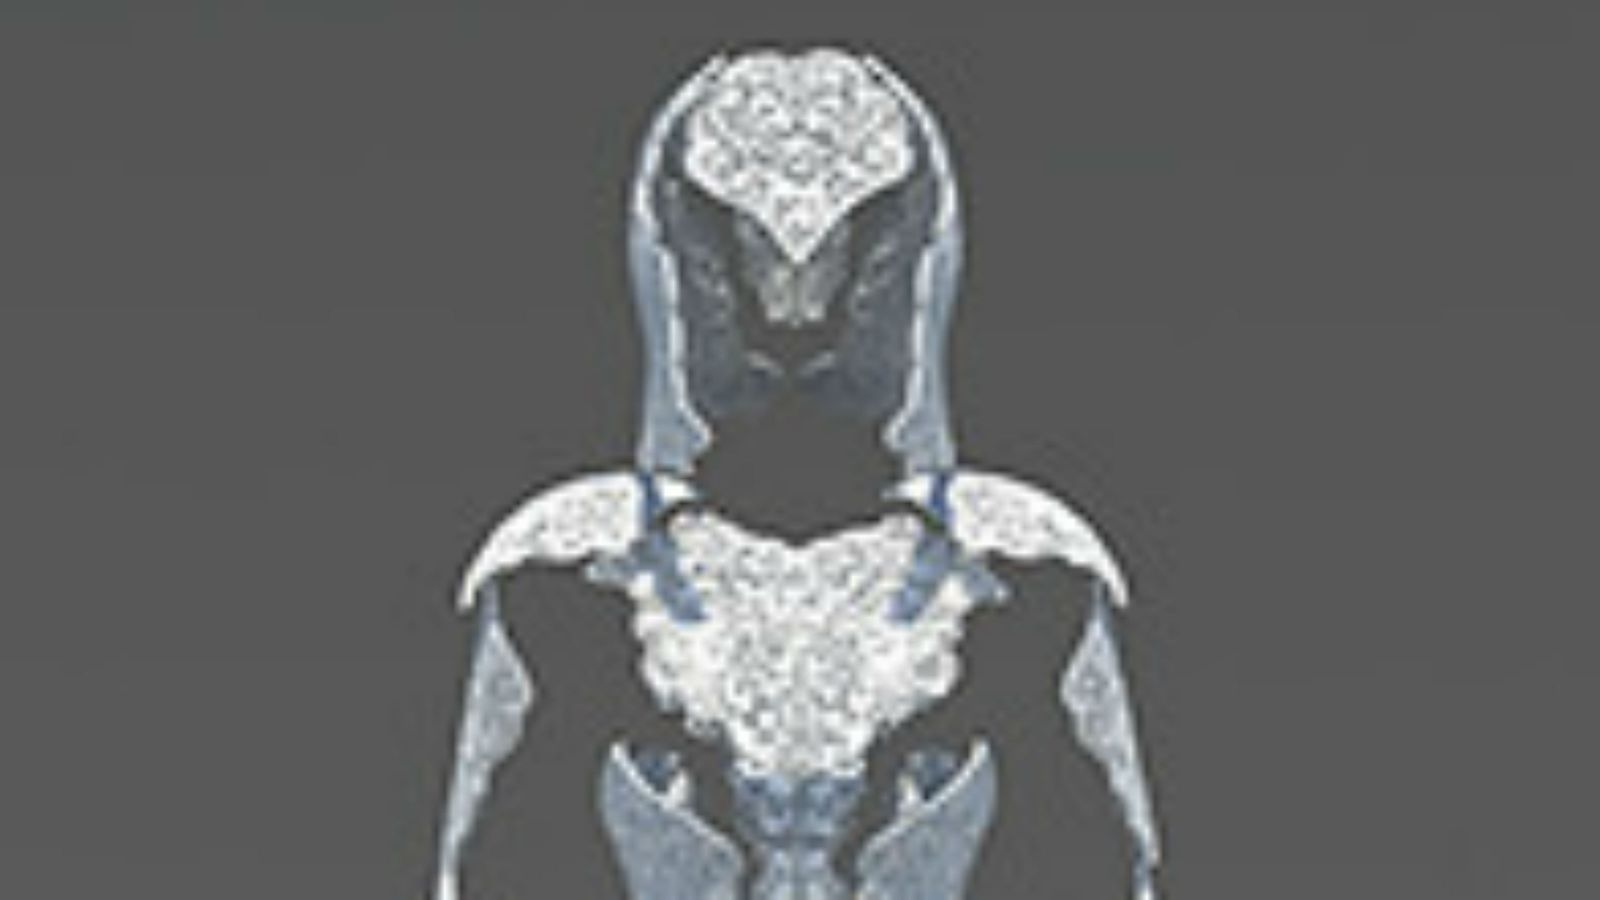 A digital graphic of human armor.